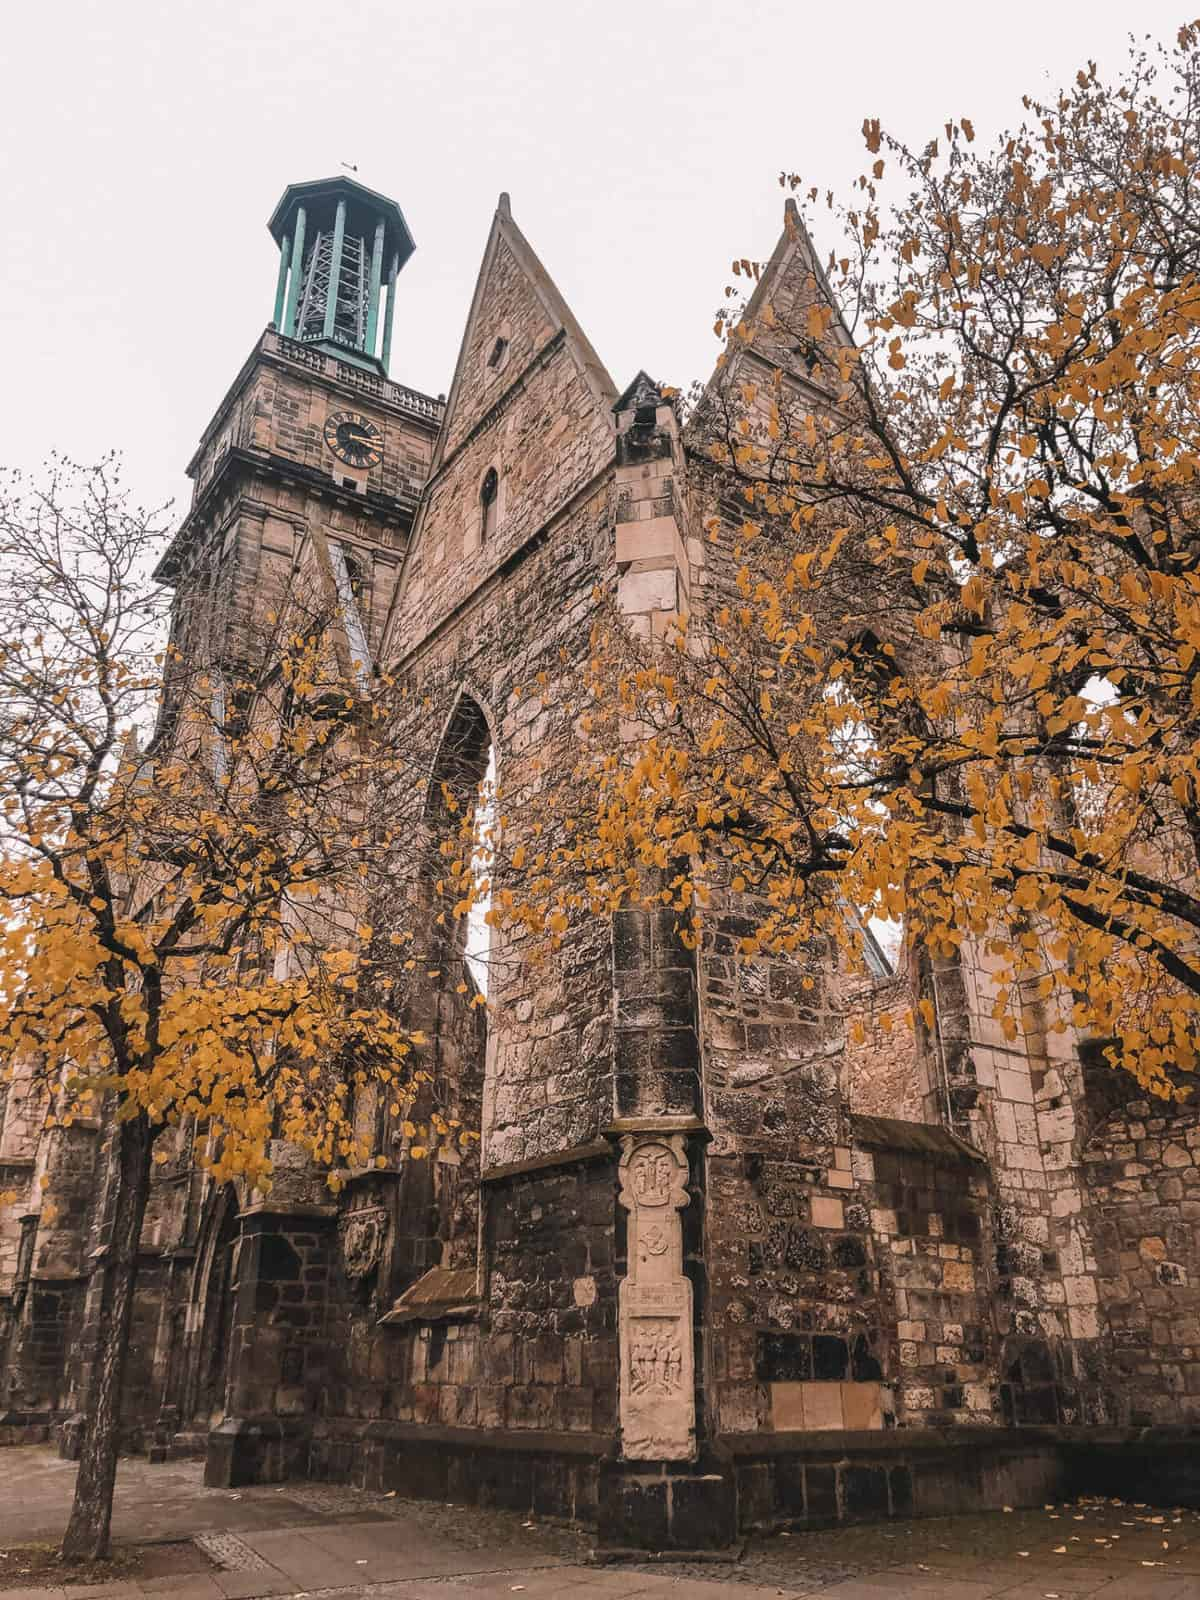 An old destroyed church with autumn leaves